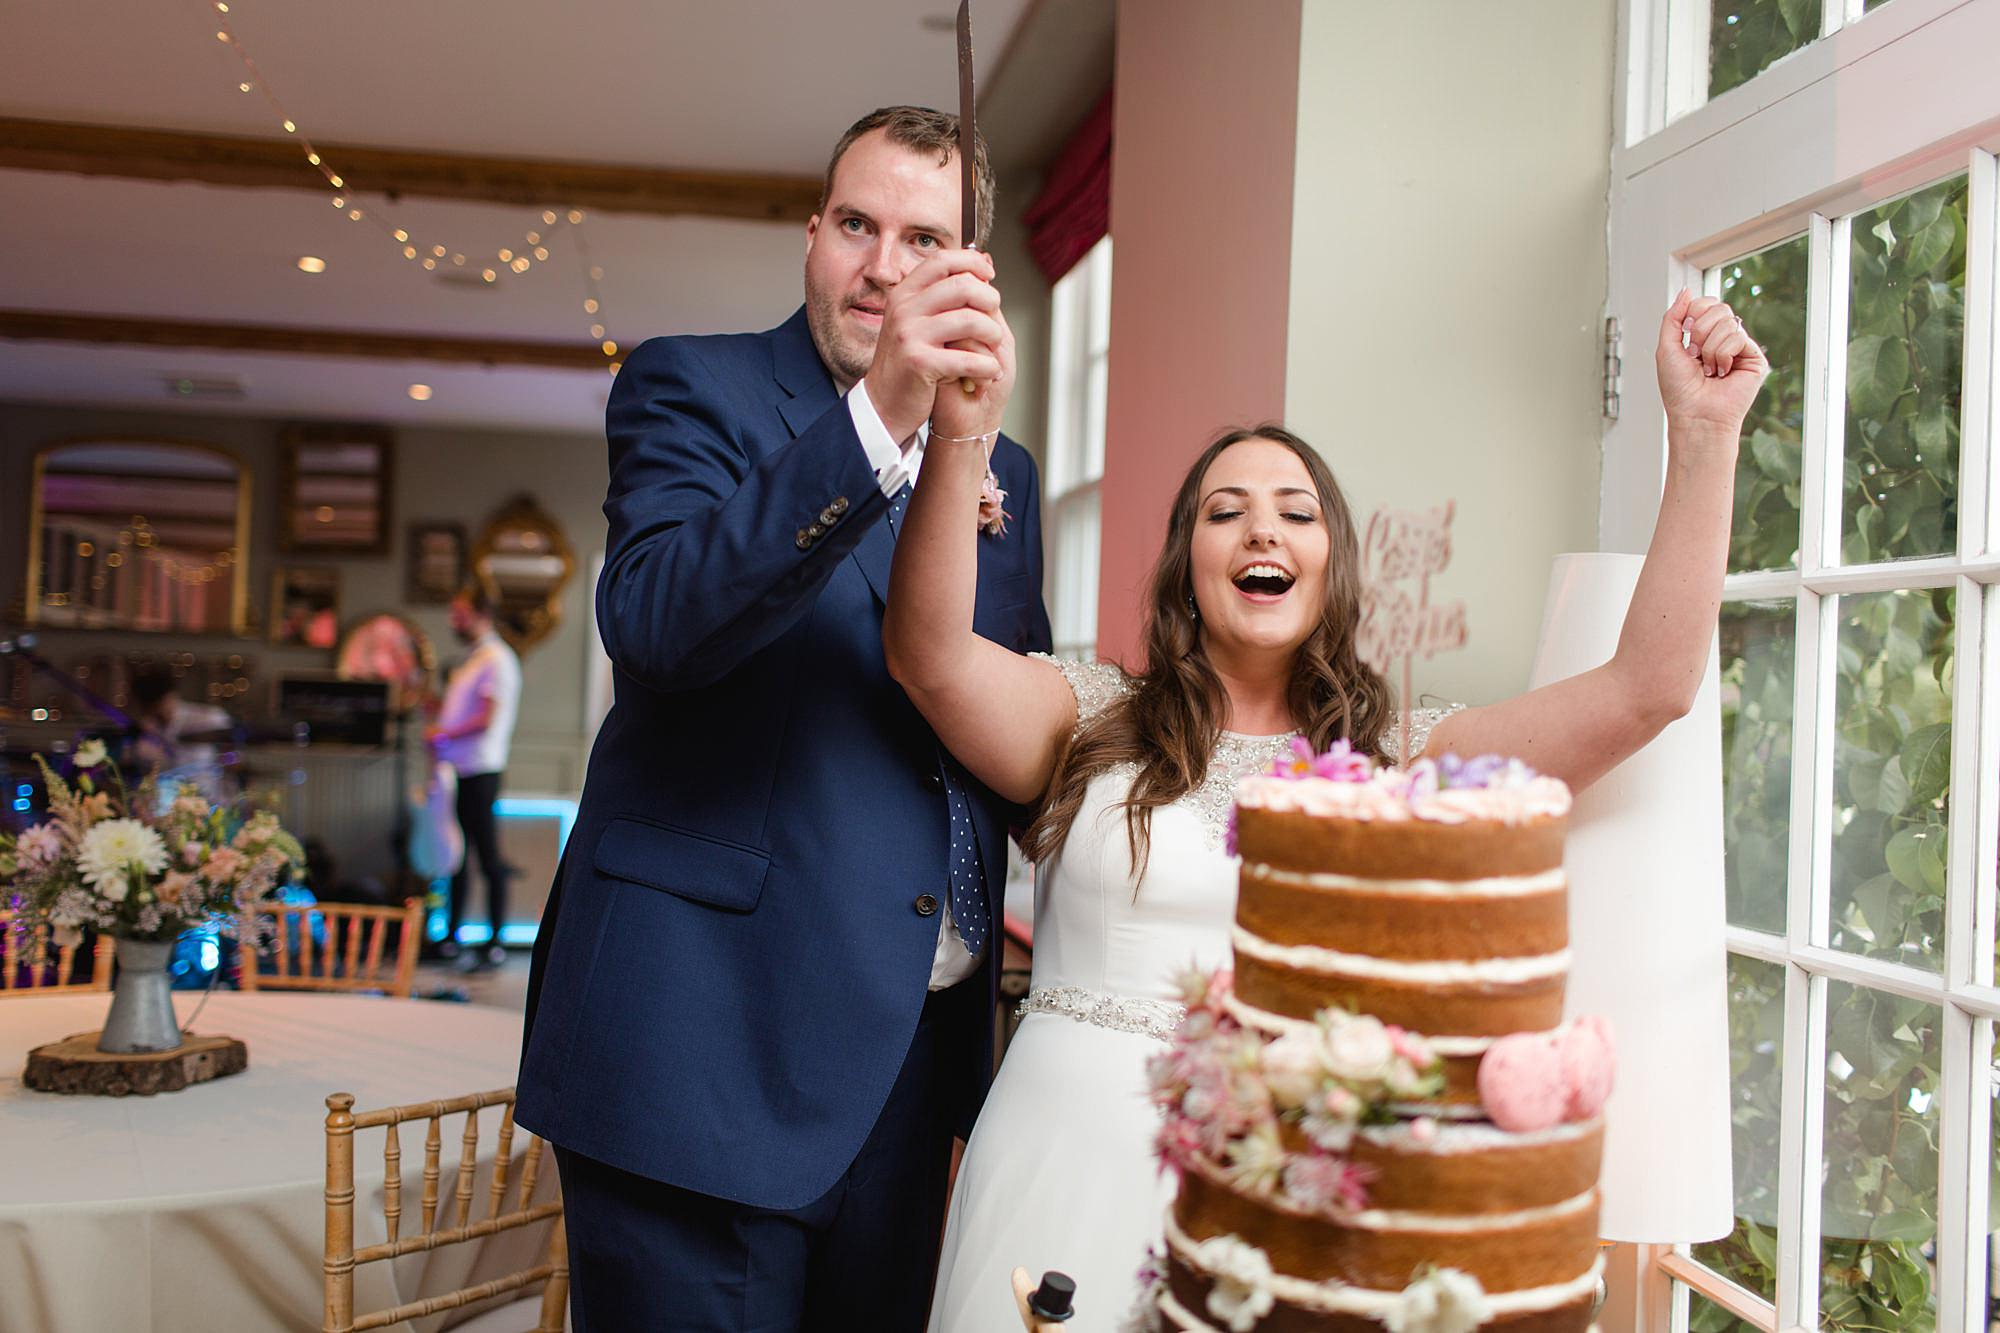 fun outdoor wedding fun portrait of bride and groom cutting cake